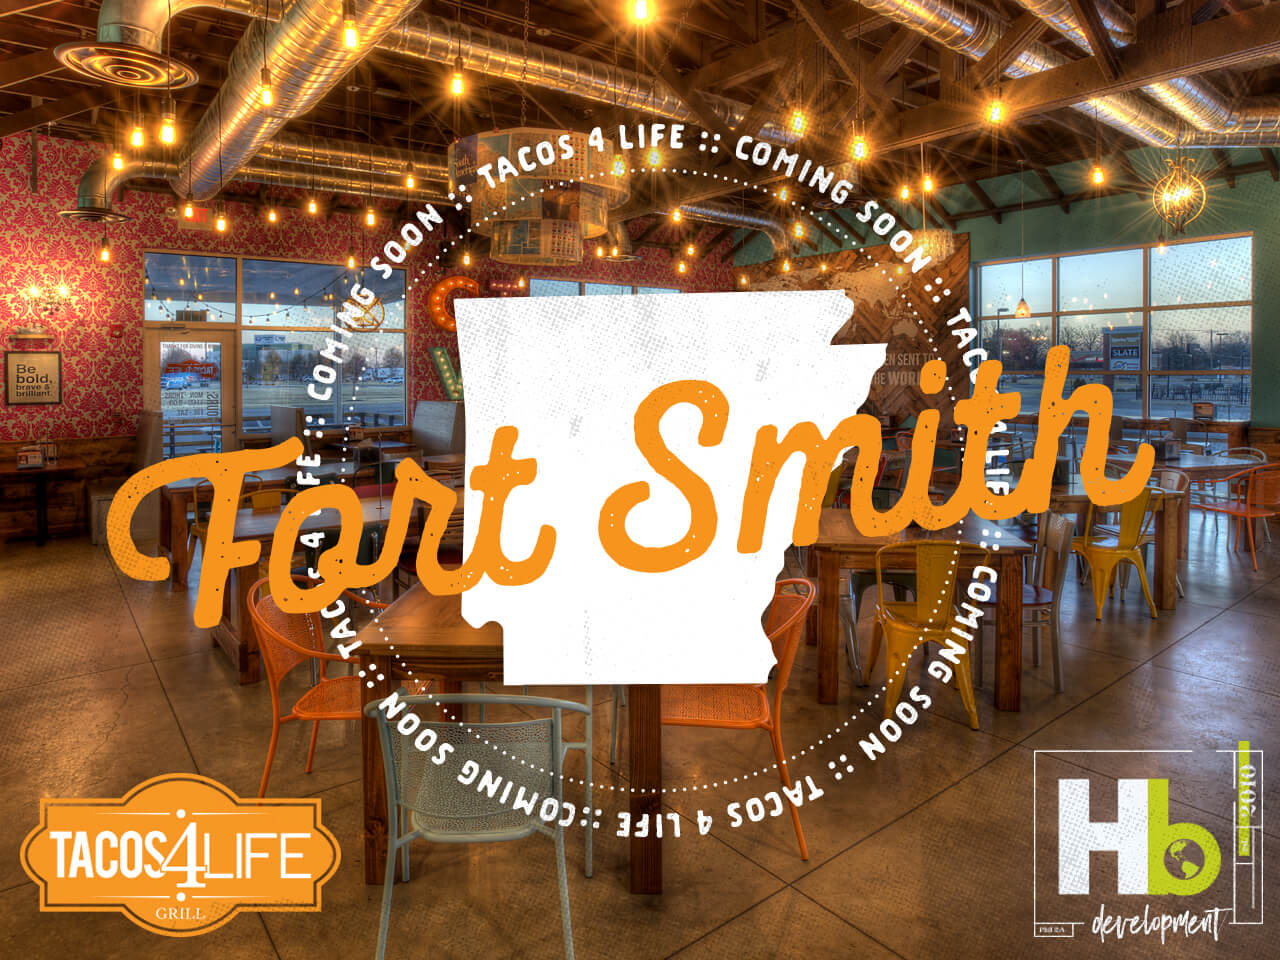 Tacos 4 Life Expanding to Fort Smith, AR